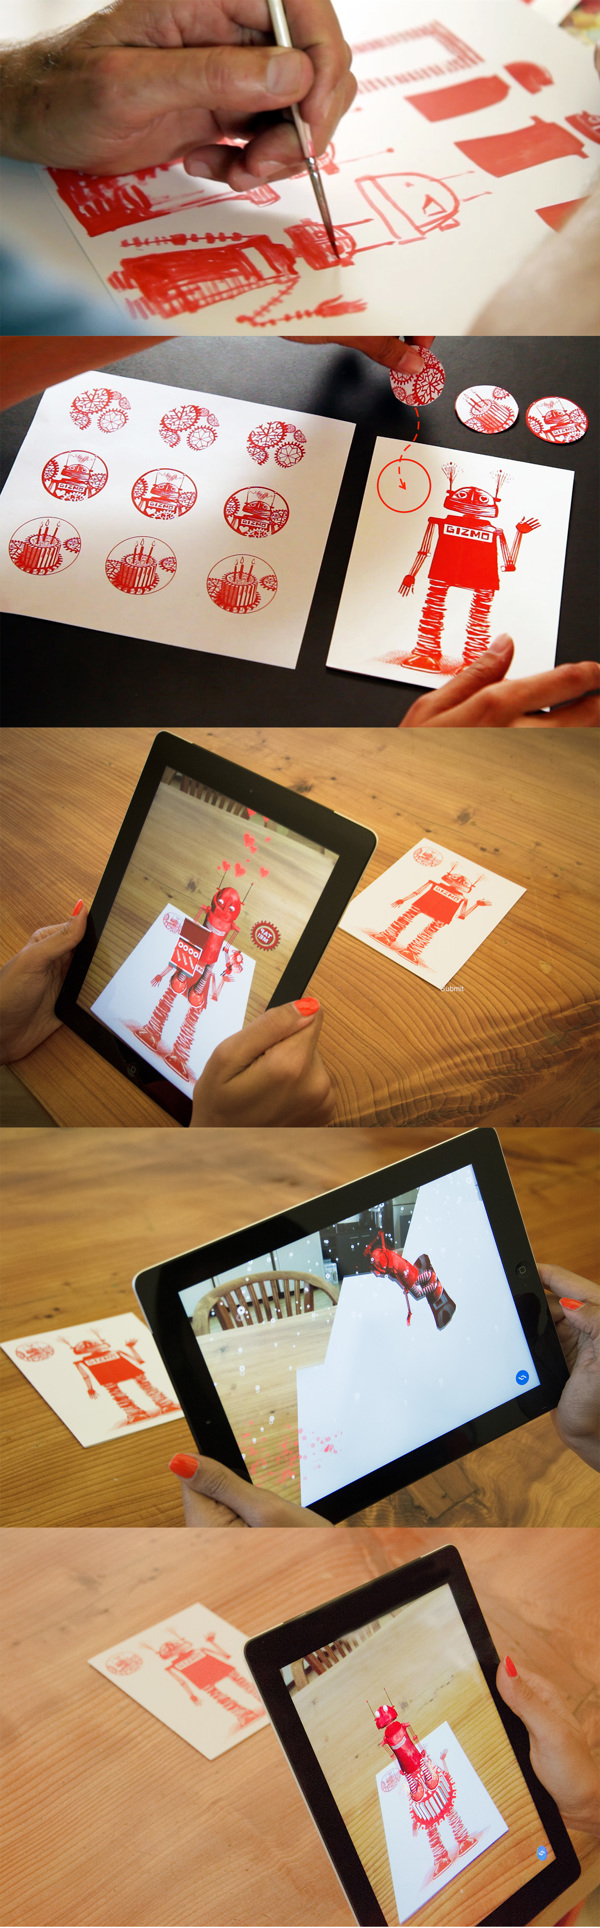 Ux design for gizmo augmented reality greeting cards by nafeesa ux design for gizmo augmented reality greeting cards by nafeesa jafferjee via behance m4hsunfo